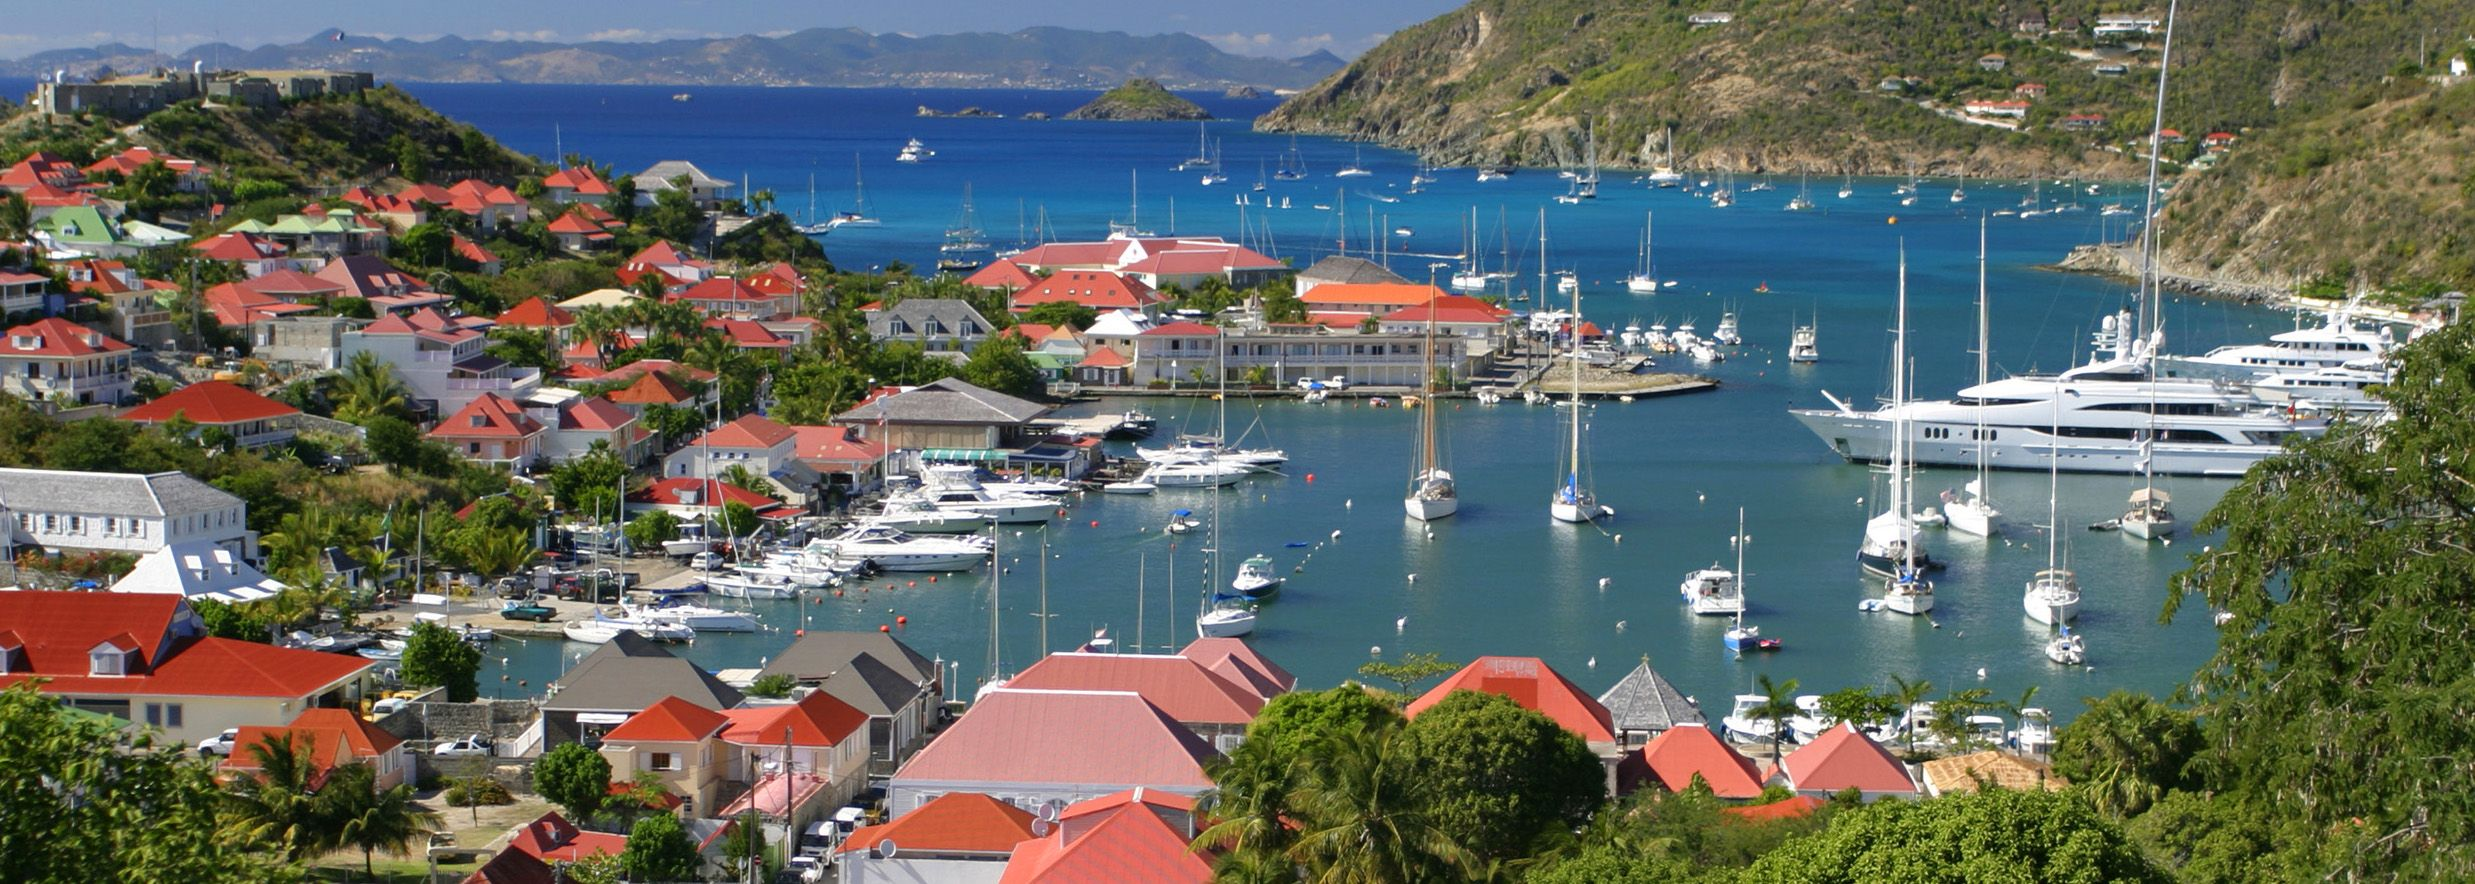 Lovely Gustavia - Capital of Saint Barts Transforming the way we travel http://yourbesttraveler.com